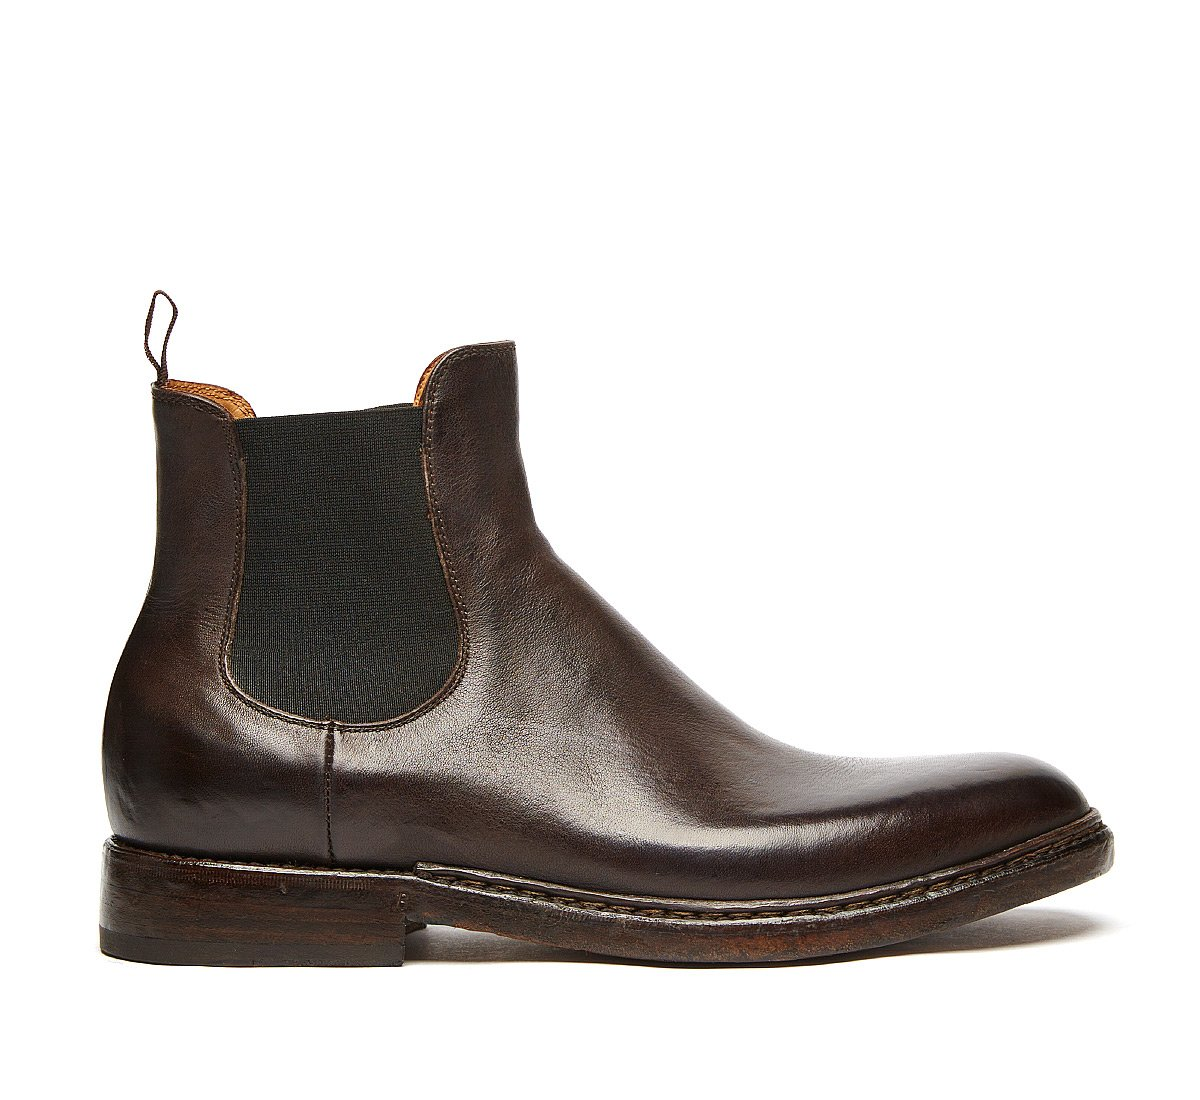 Barracuda Beatle boot in luxury calf leather